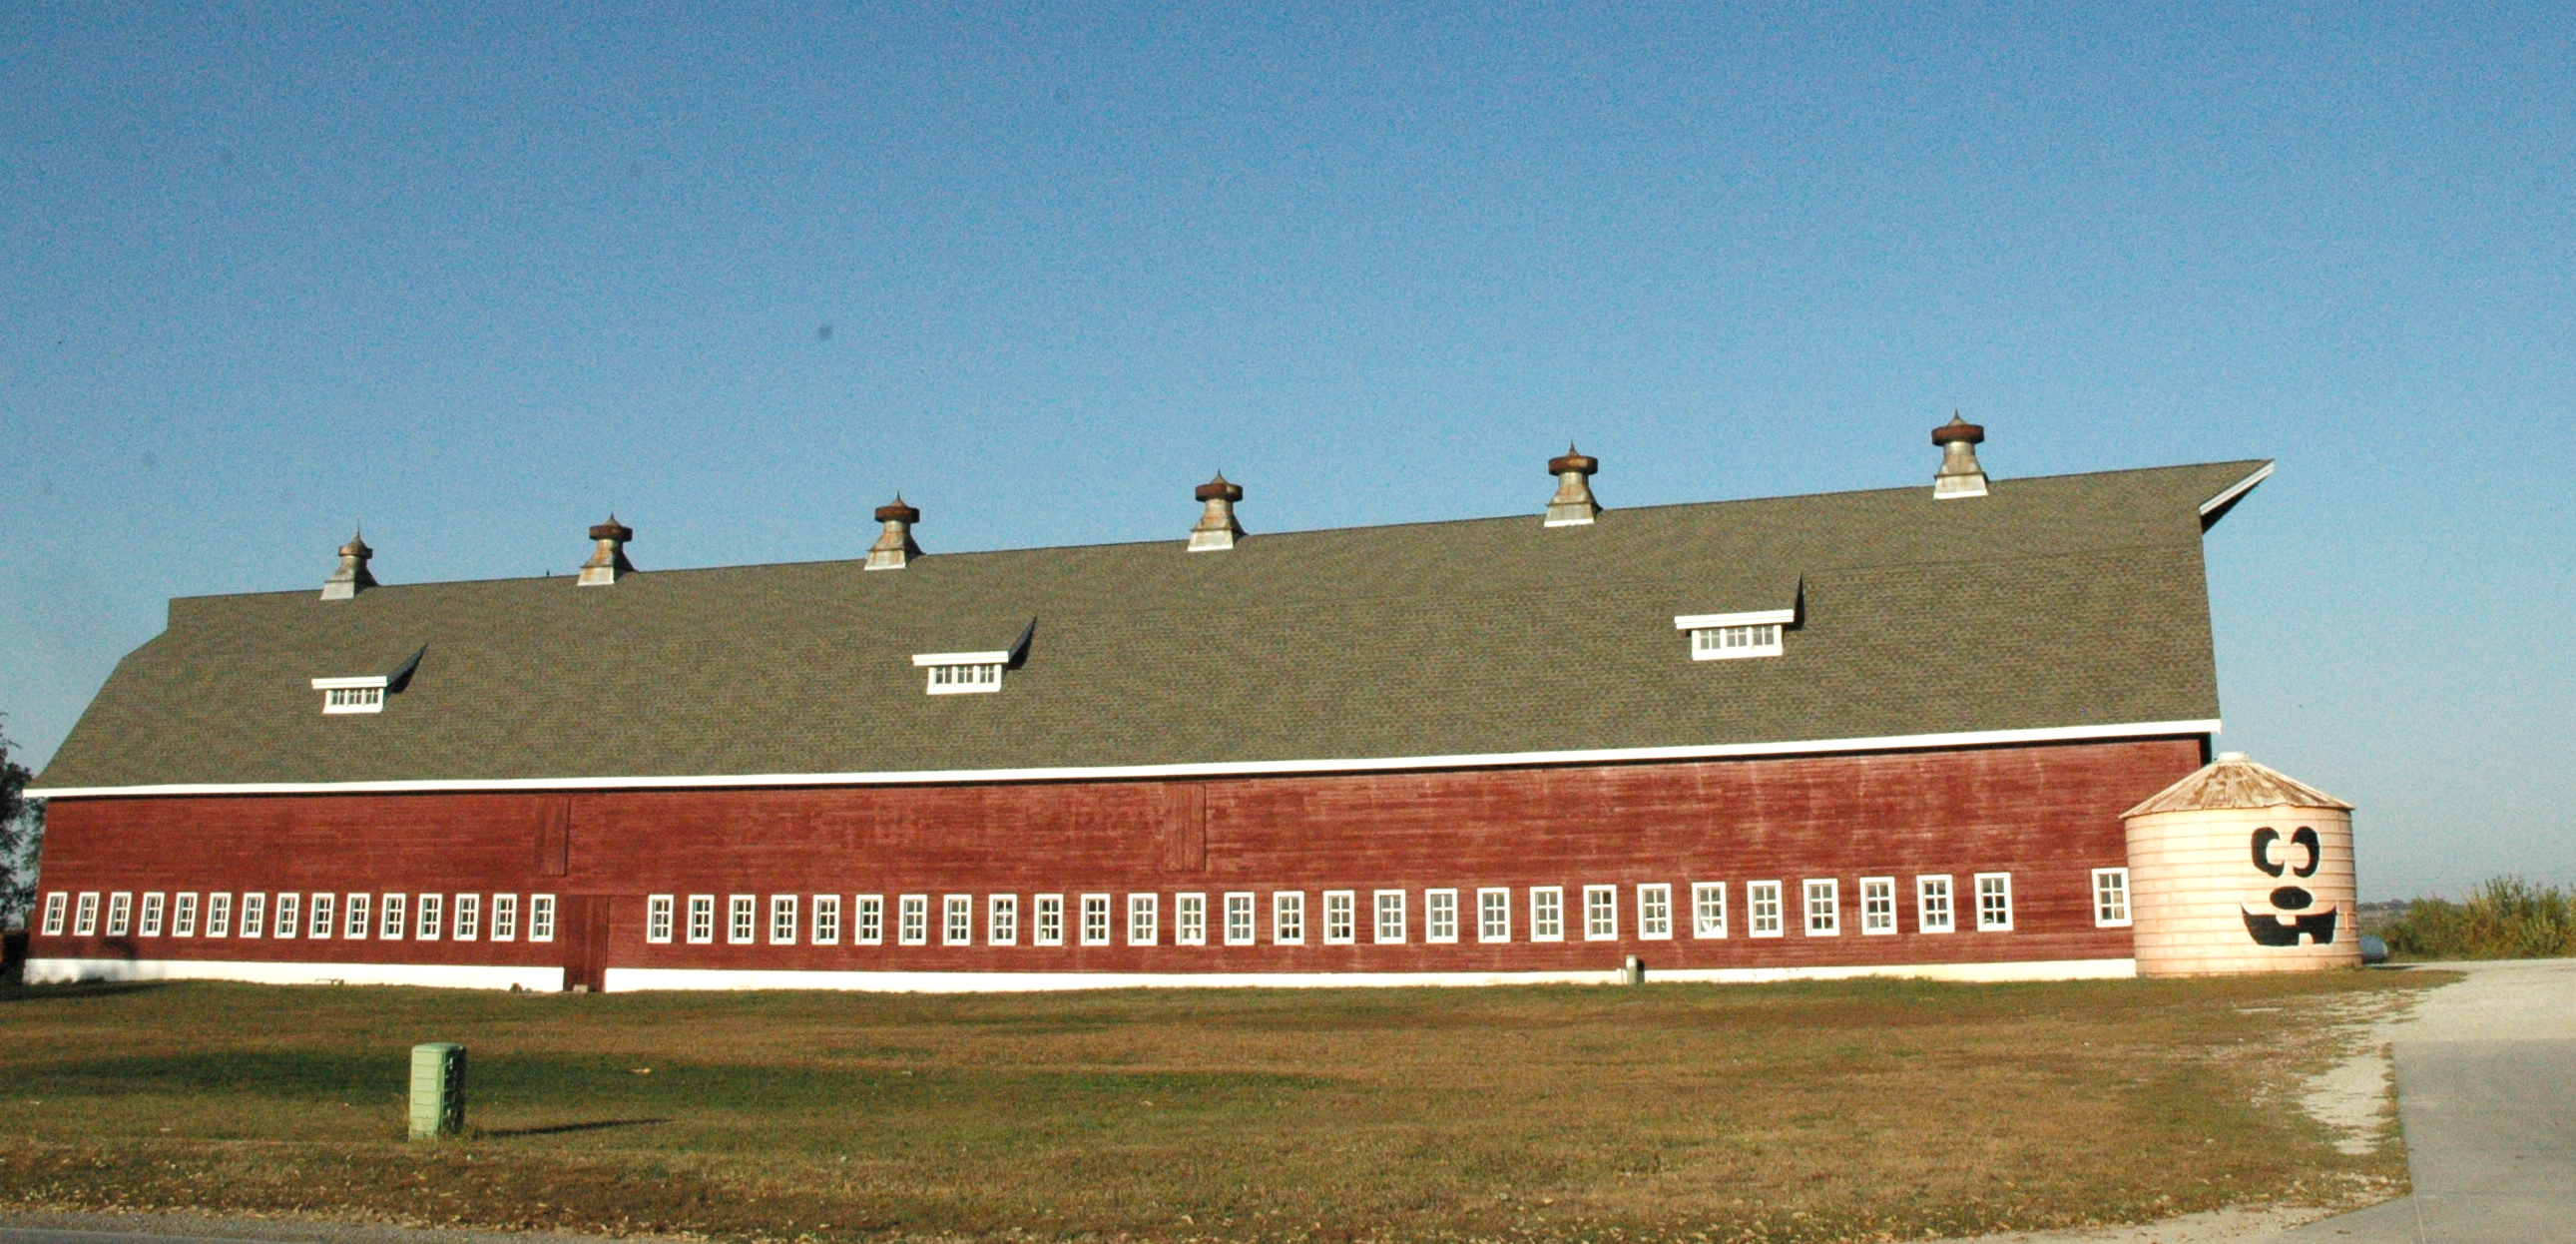 Ackerhurst Barn prior to major renovations.